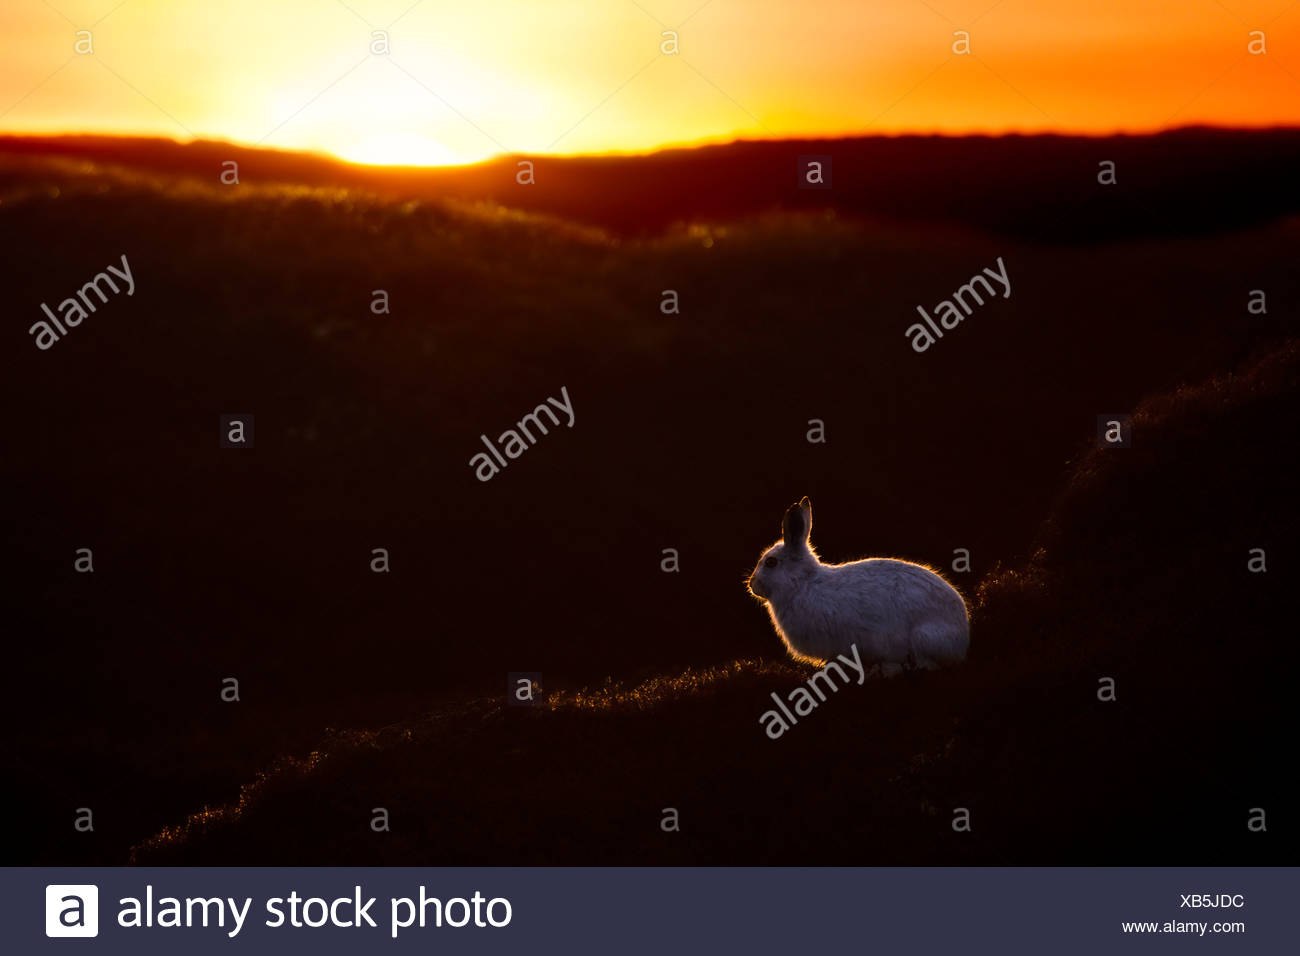 Mountain Hare at sunset with white coat that it develops during winter. Kinder Scout, Peak District National Park, Derbyshire - Stock Image